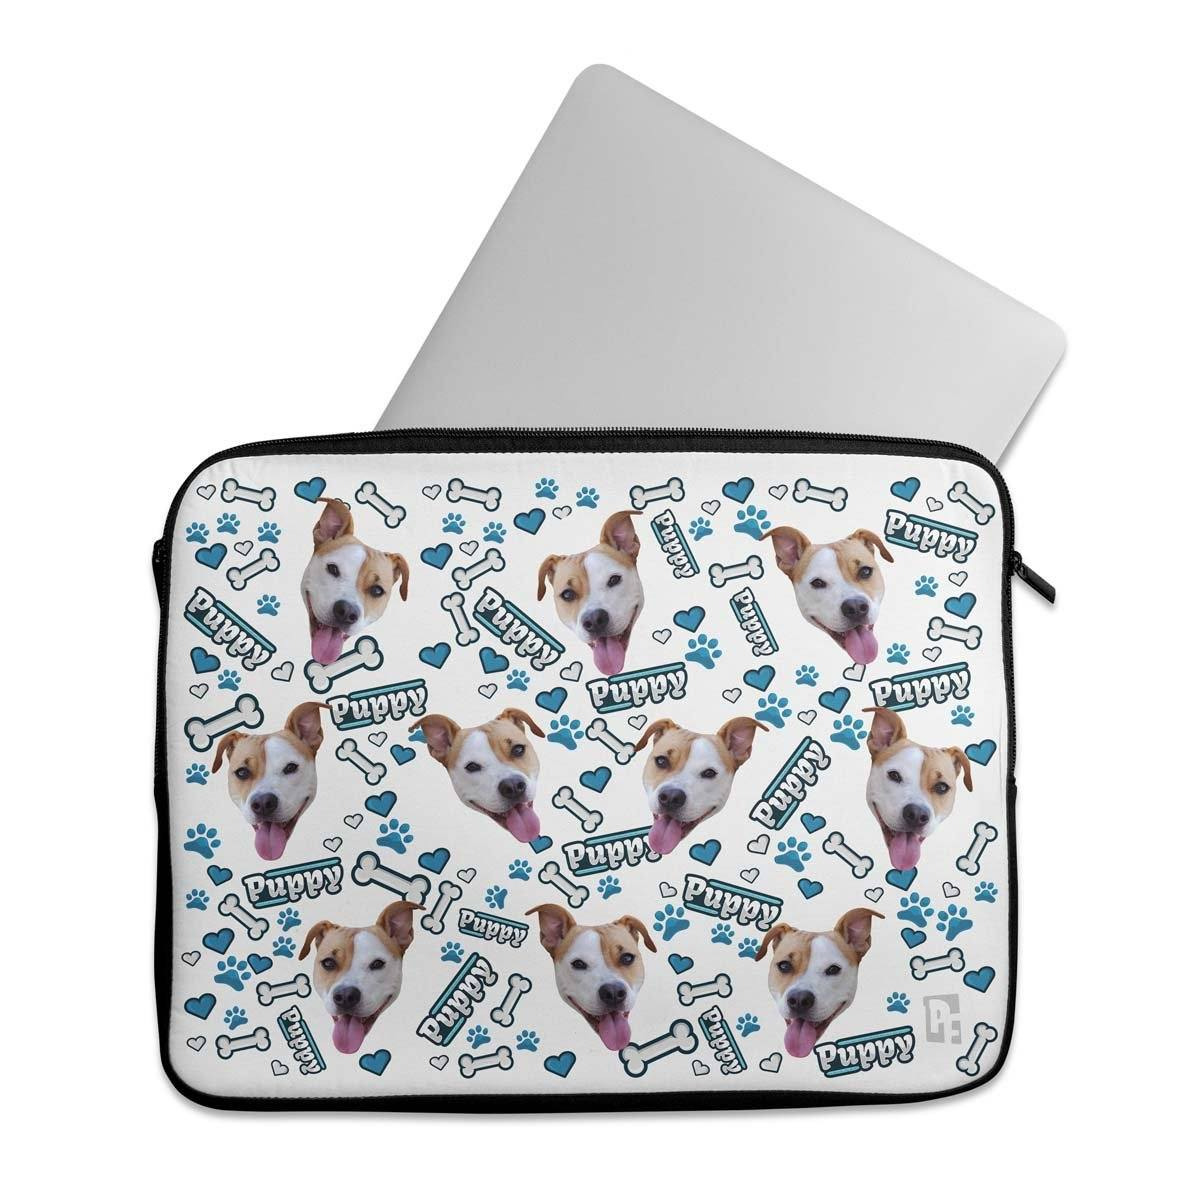 Puppy Personalized Laptop Sleeve